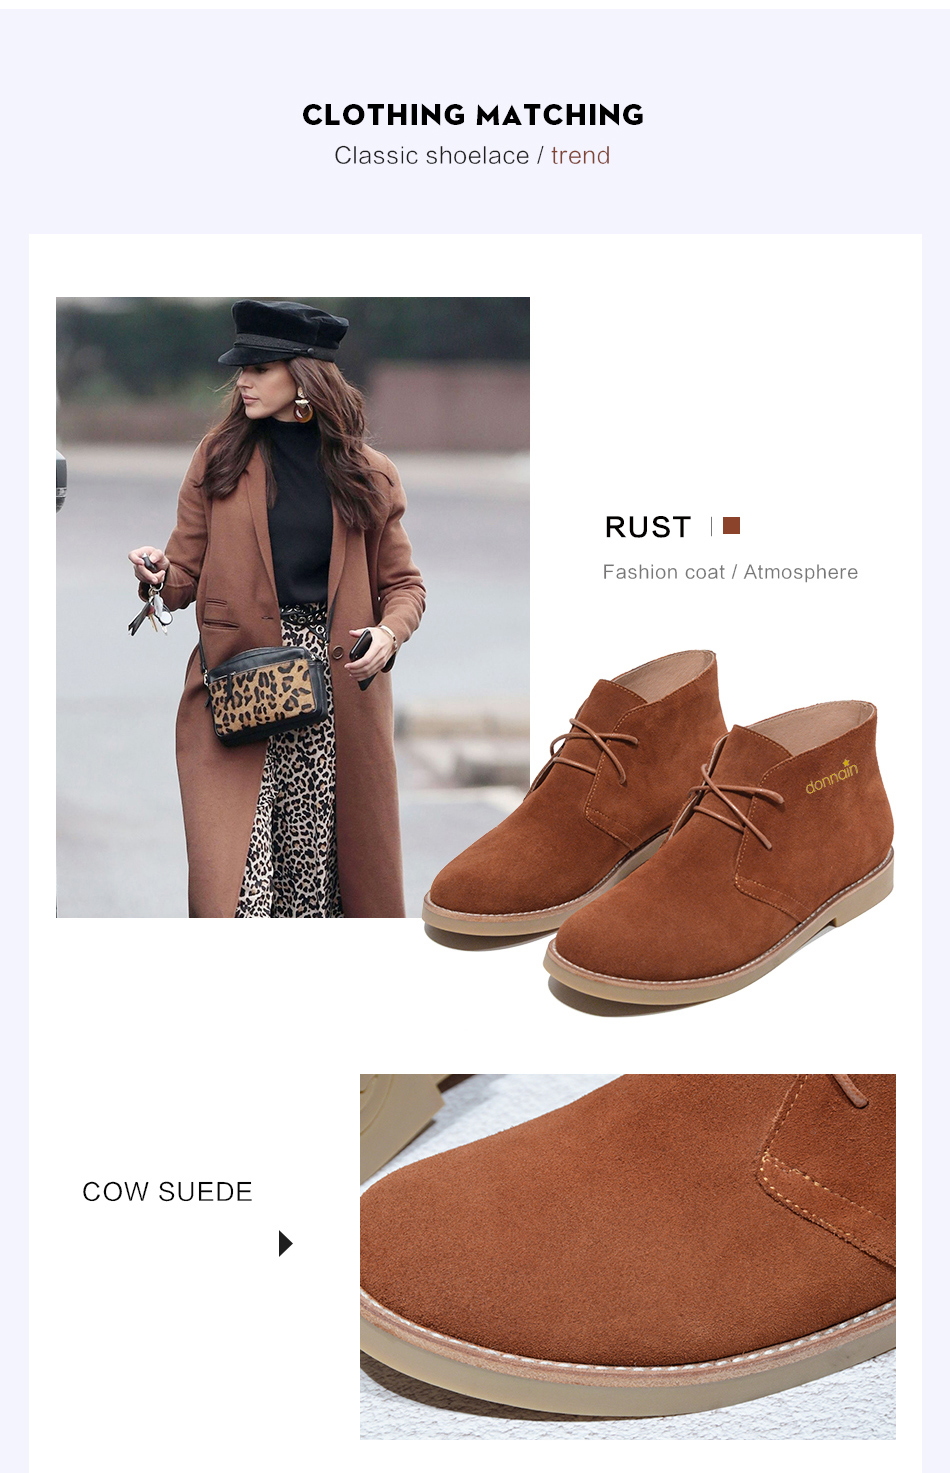 Donna-in Fashion Martin Boots Women Adult Autumn Spring 2019 Ankle Boots Suede Leather Lace-up Casual Low Heel Shoes Women (12)